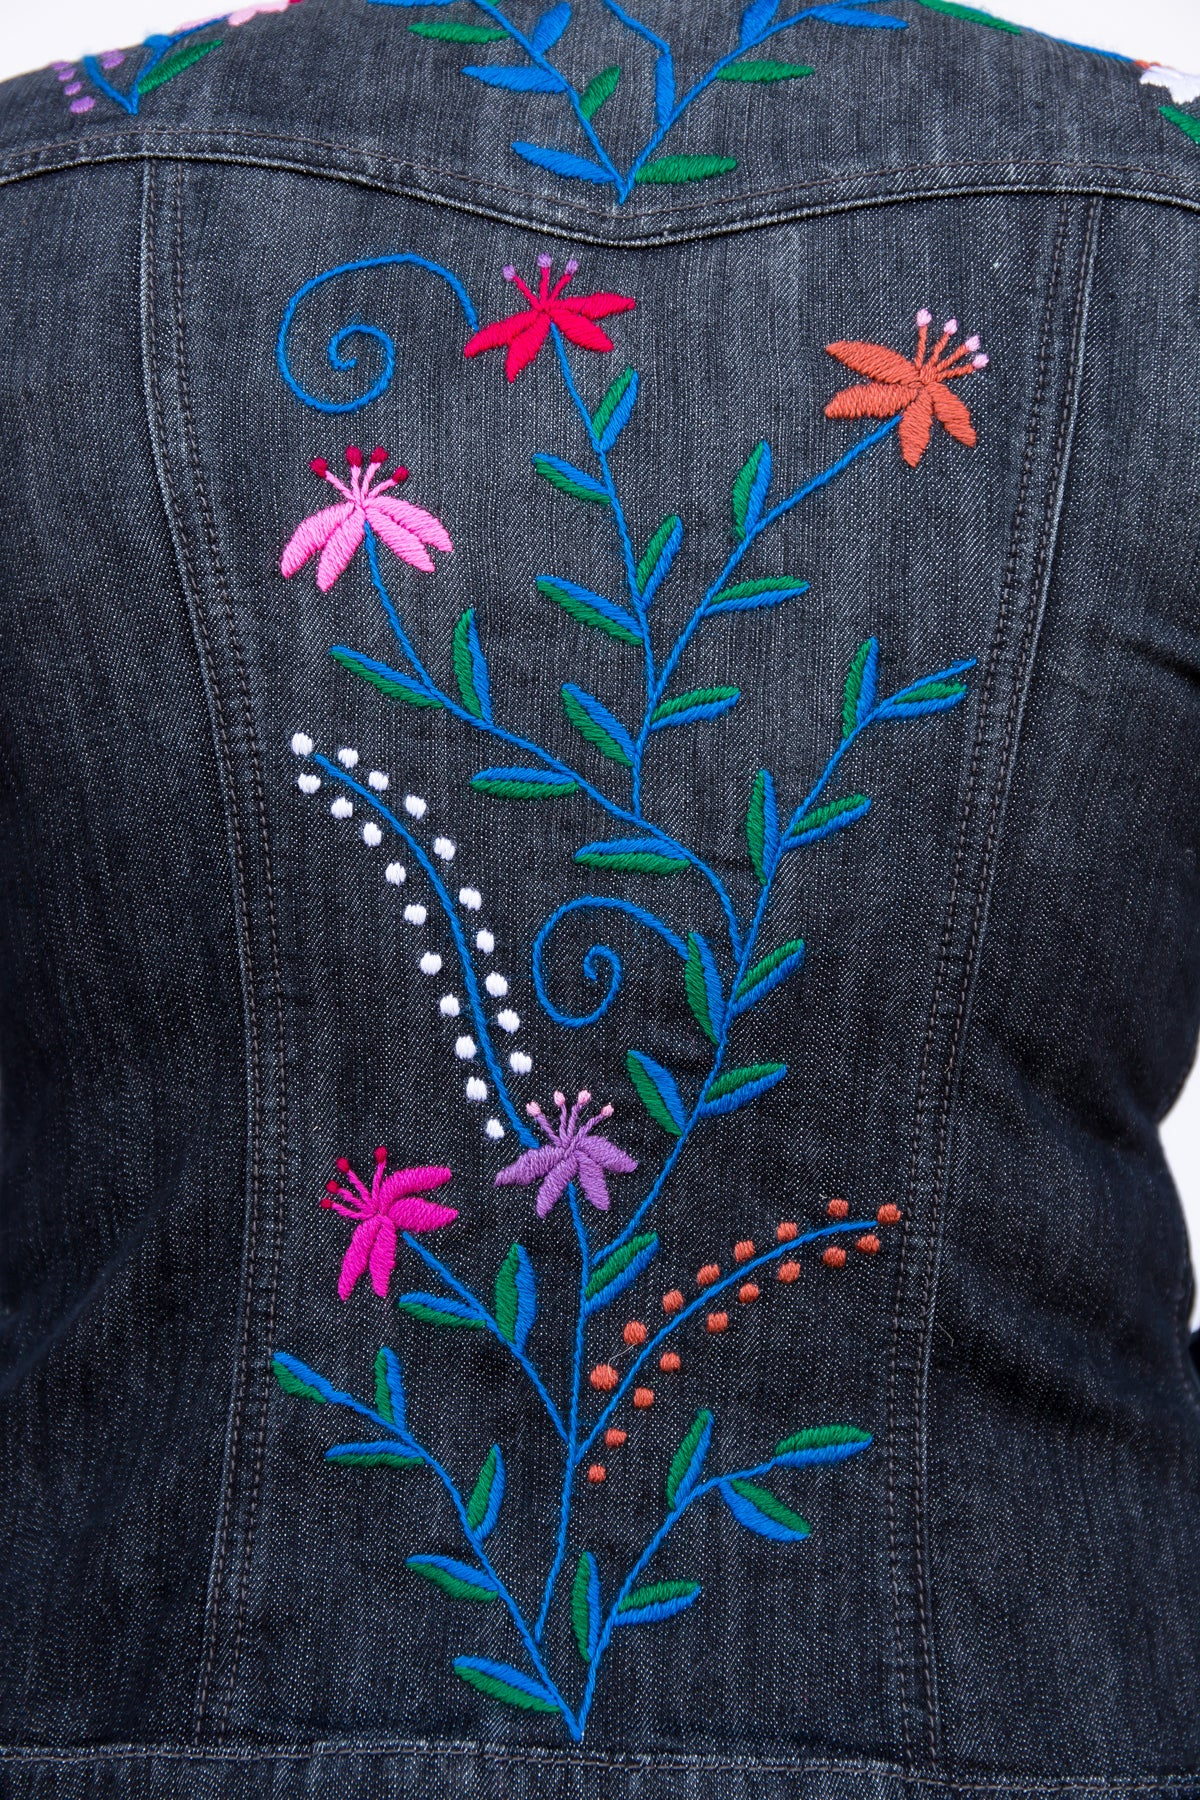 Zinacantán Noche Jean Jacket - Medium